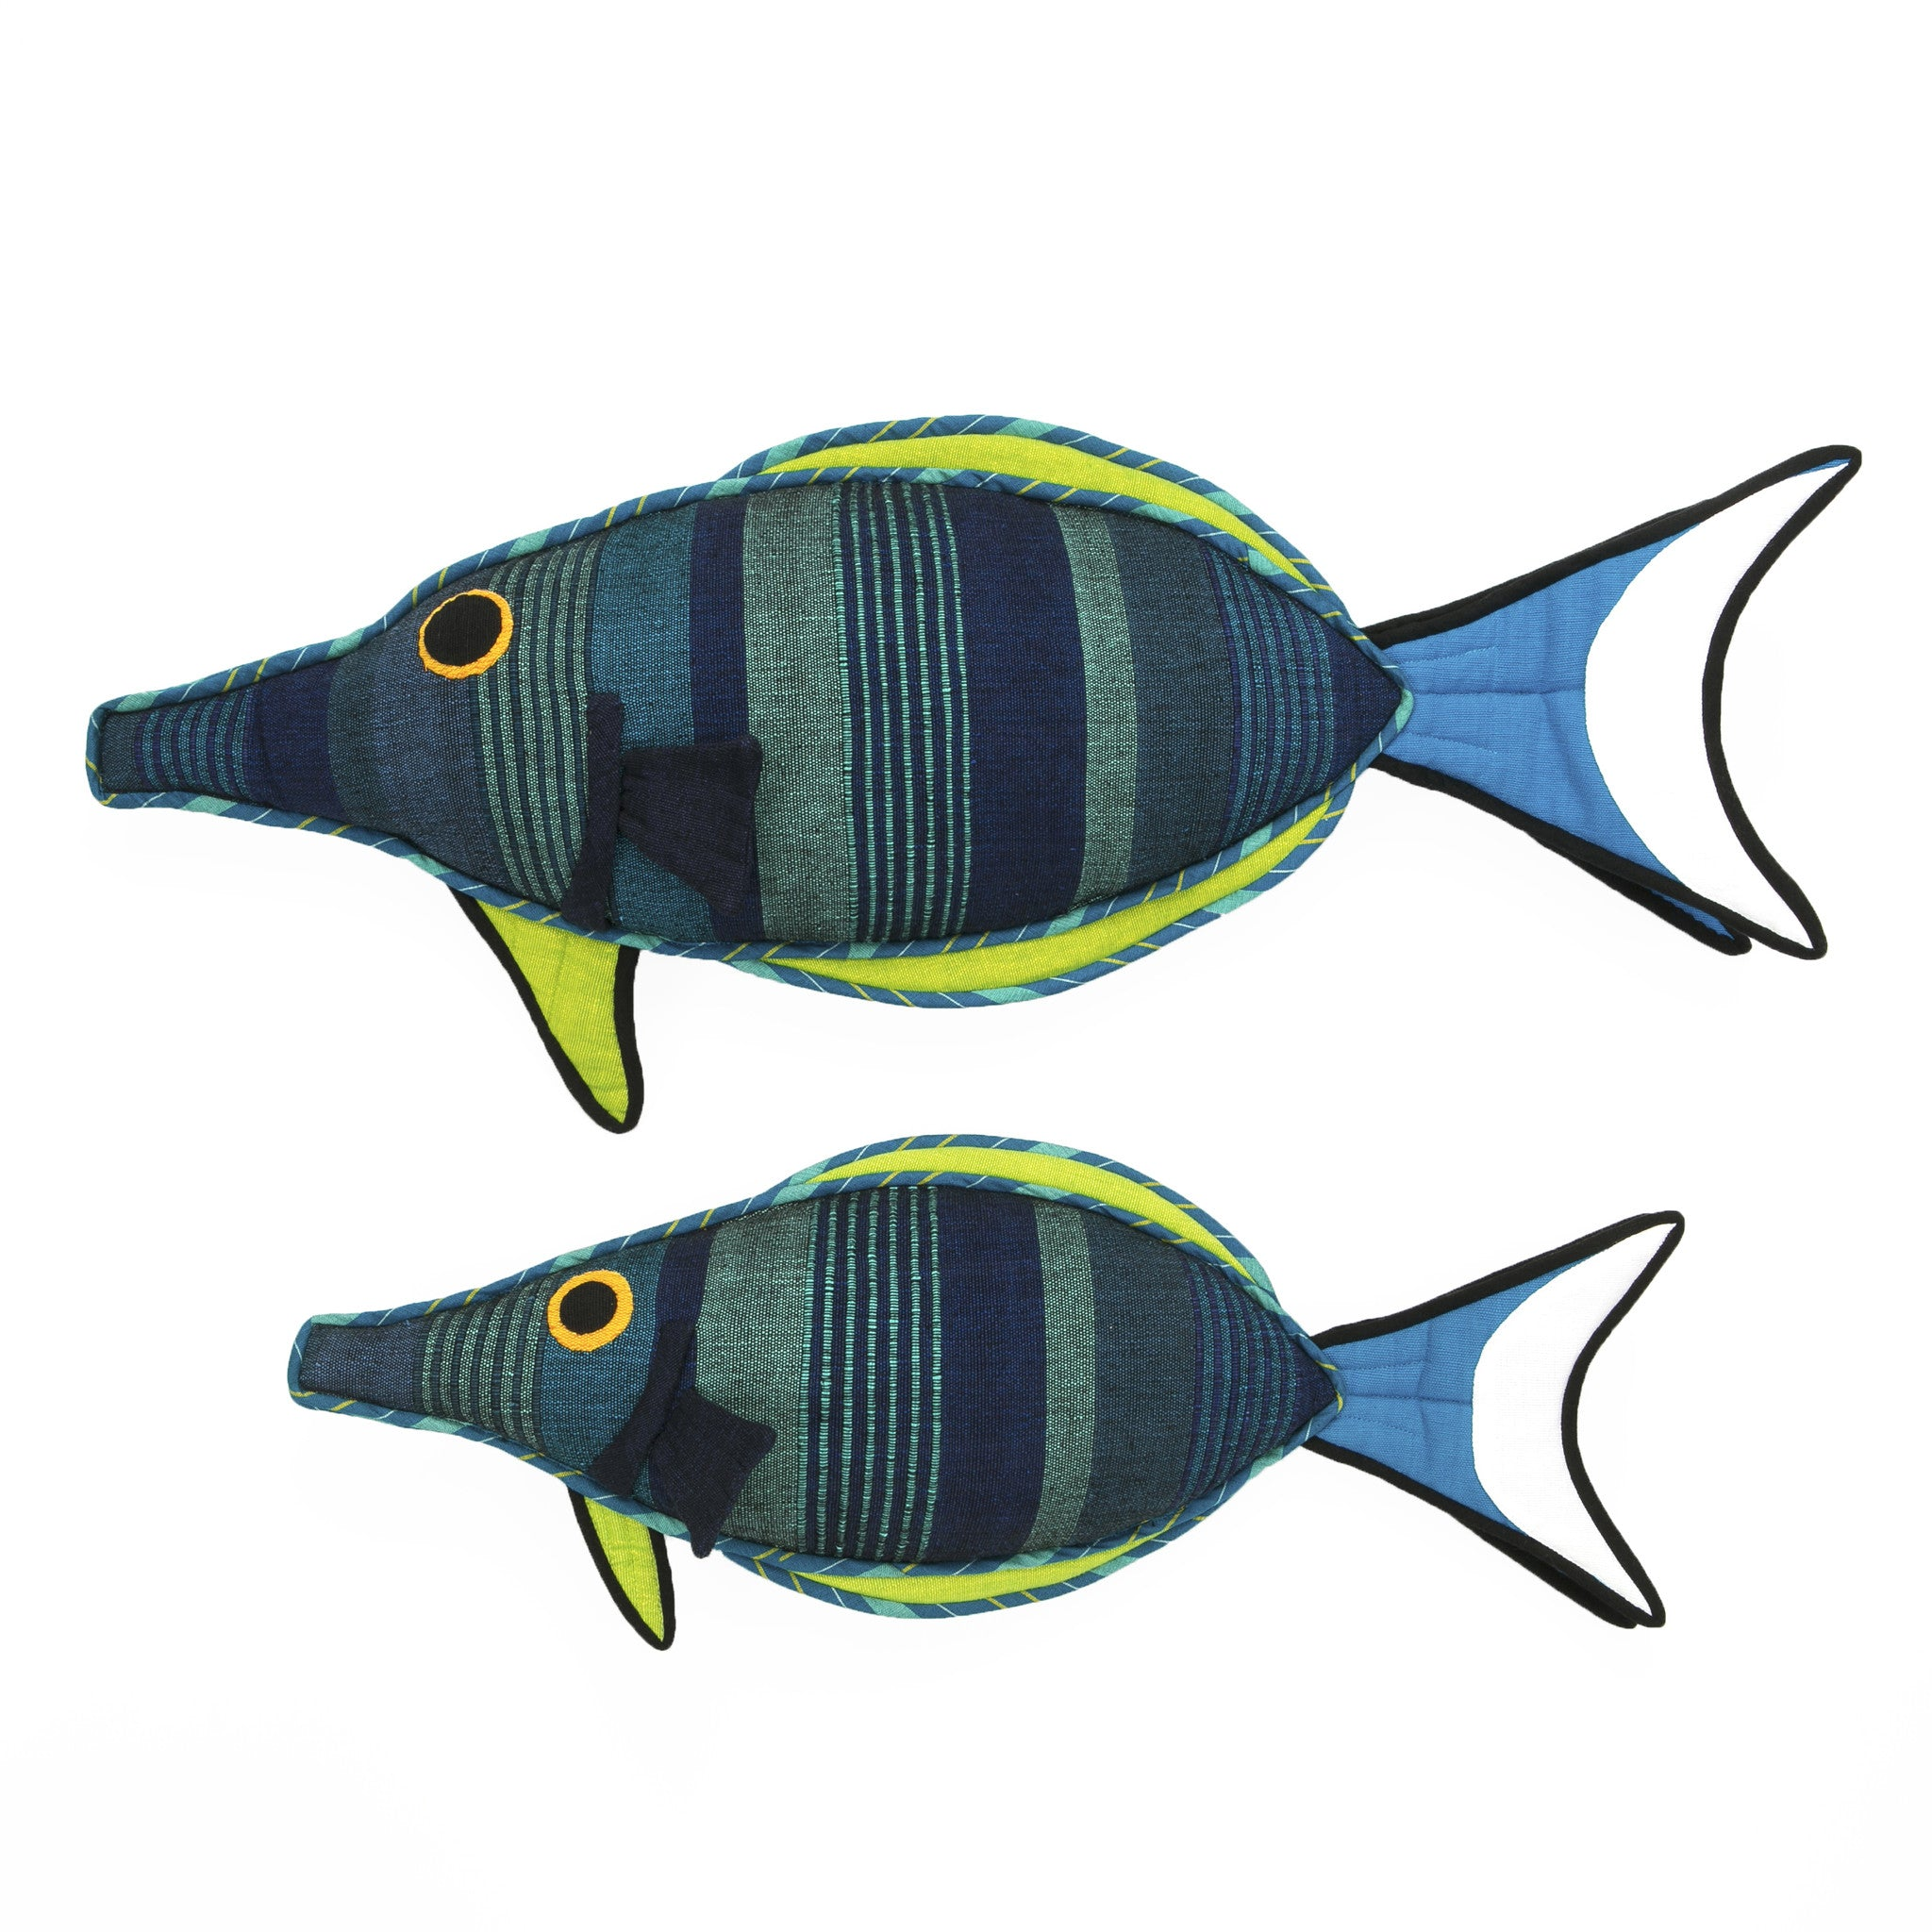 Fish Pillow - Fin, the Bird Wrasse Fish Pillow by Barefoot